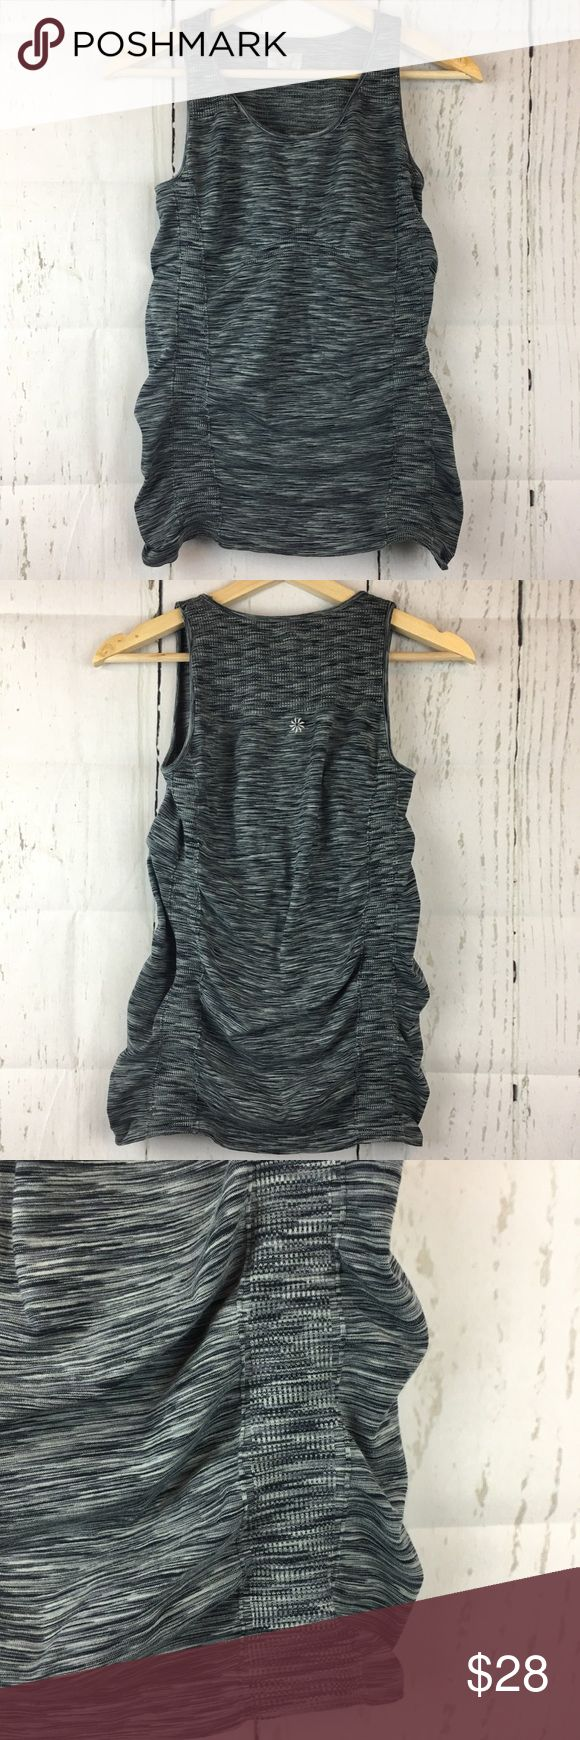 • Athleta • Stretchy Gray Athletic Tank Top This tank top is in excellent condition!!! No rips, stains, or flaws. Sorry, no trades or pay pal but offers are welcome! Athleta Tops Tank Tops